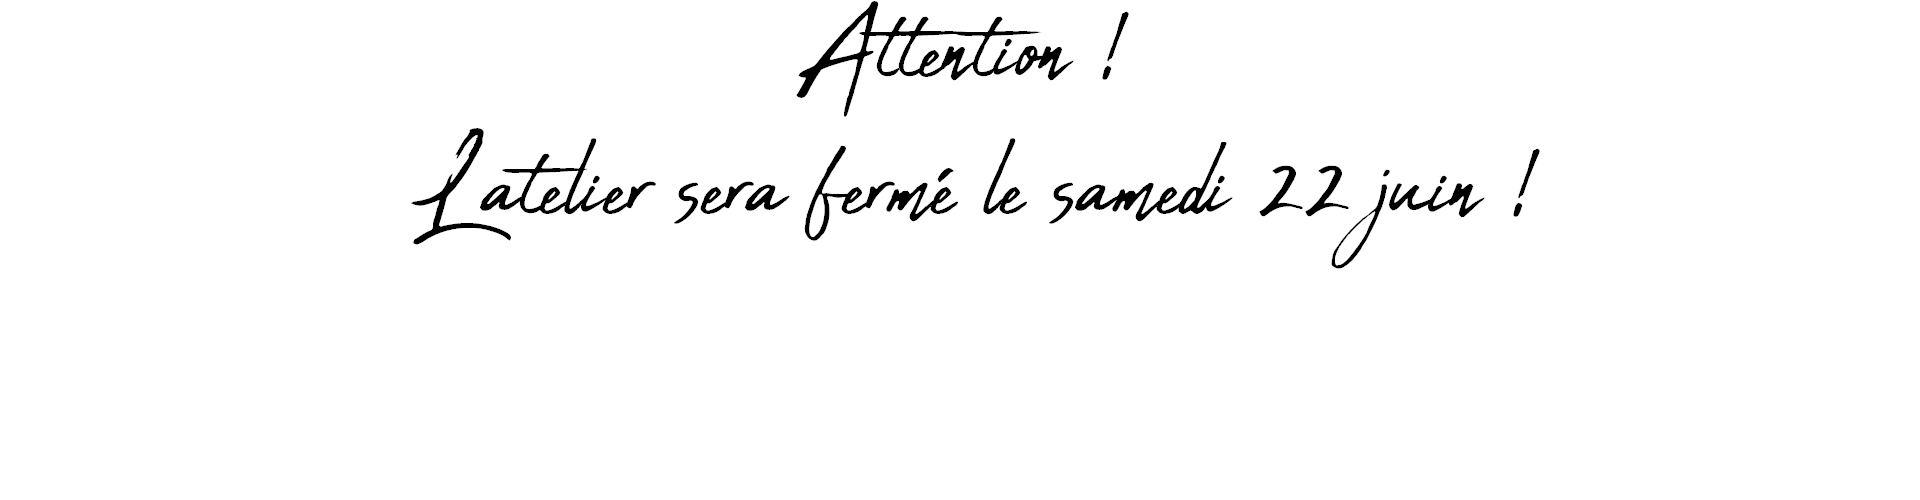 Attention fermeture exceptionnelle